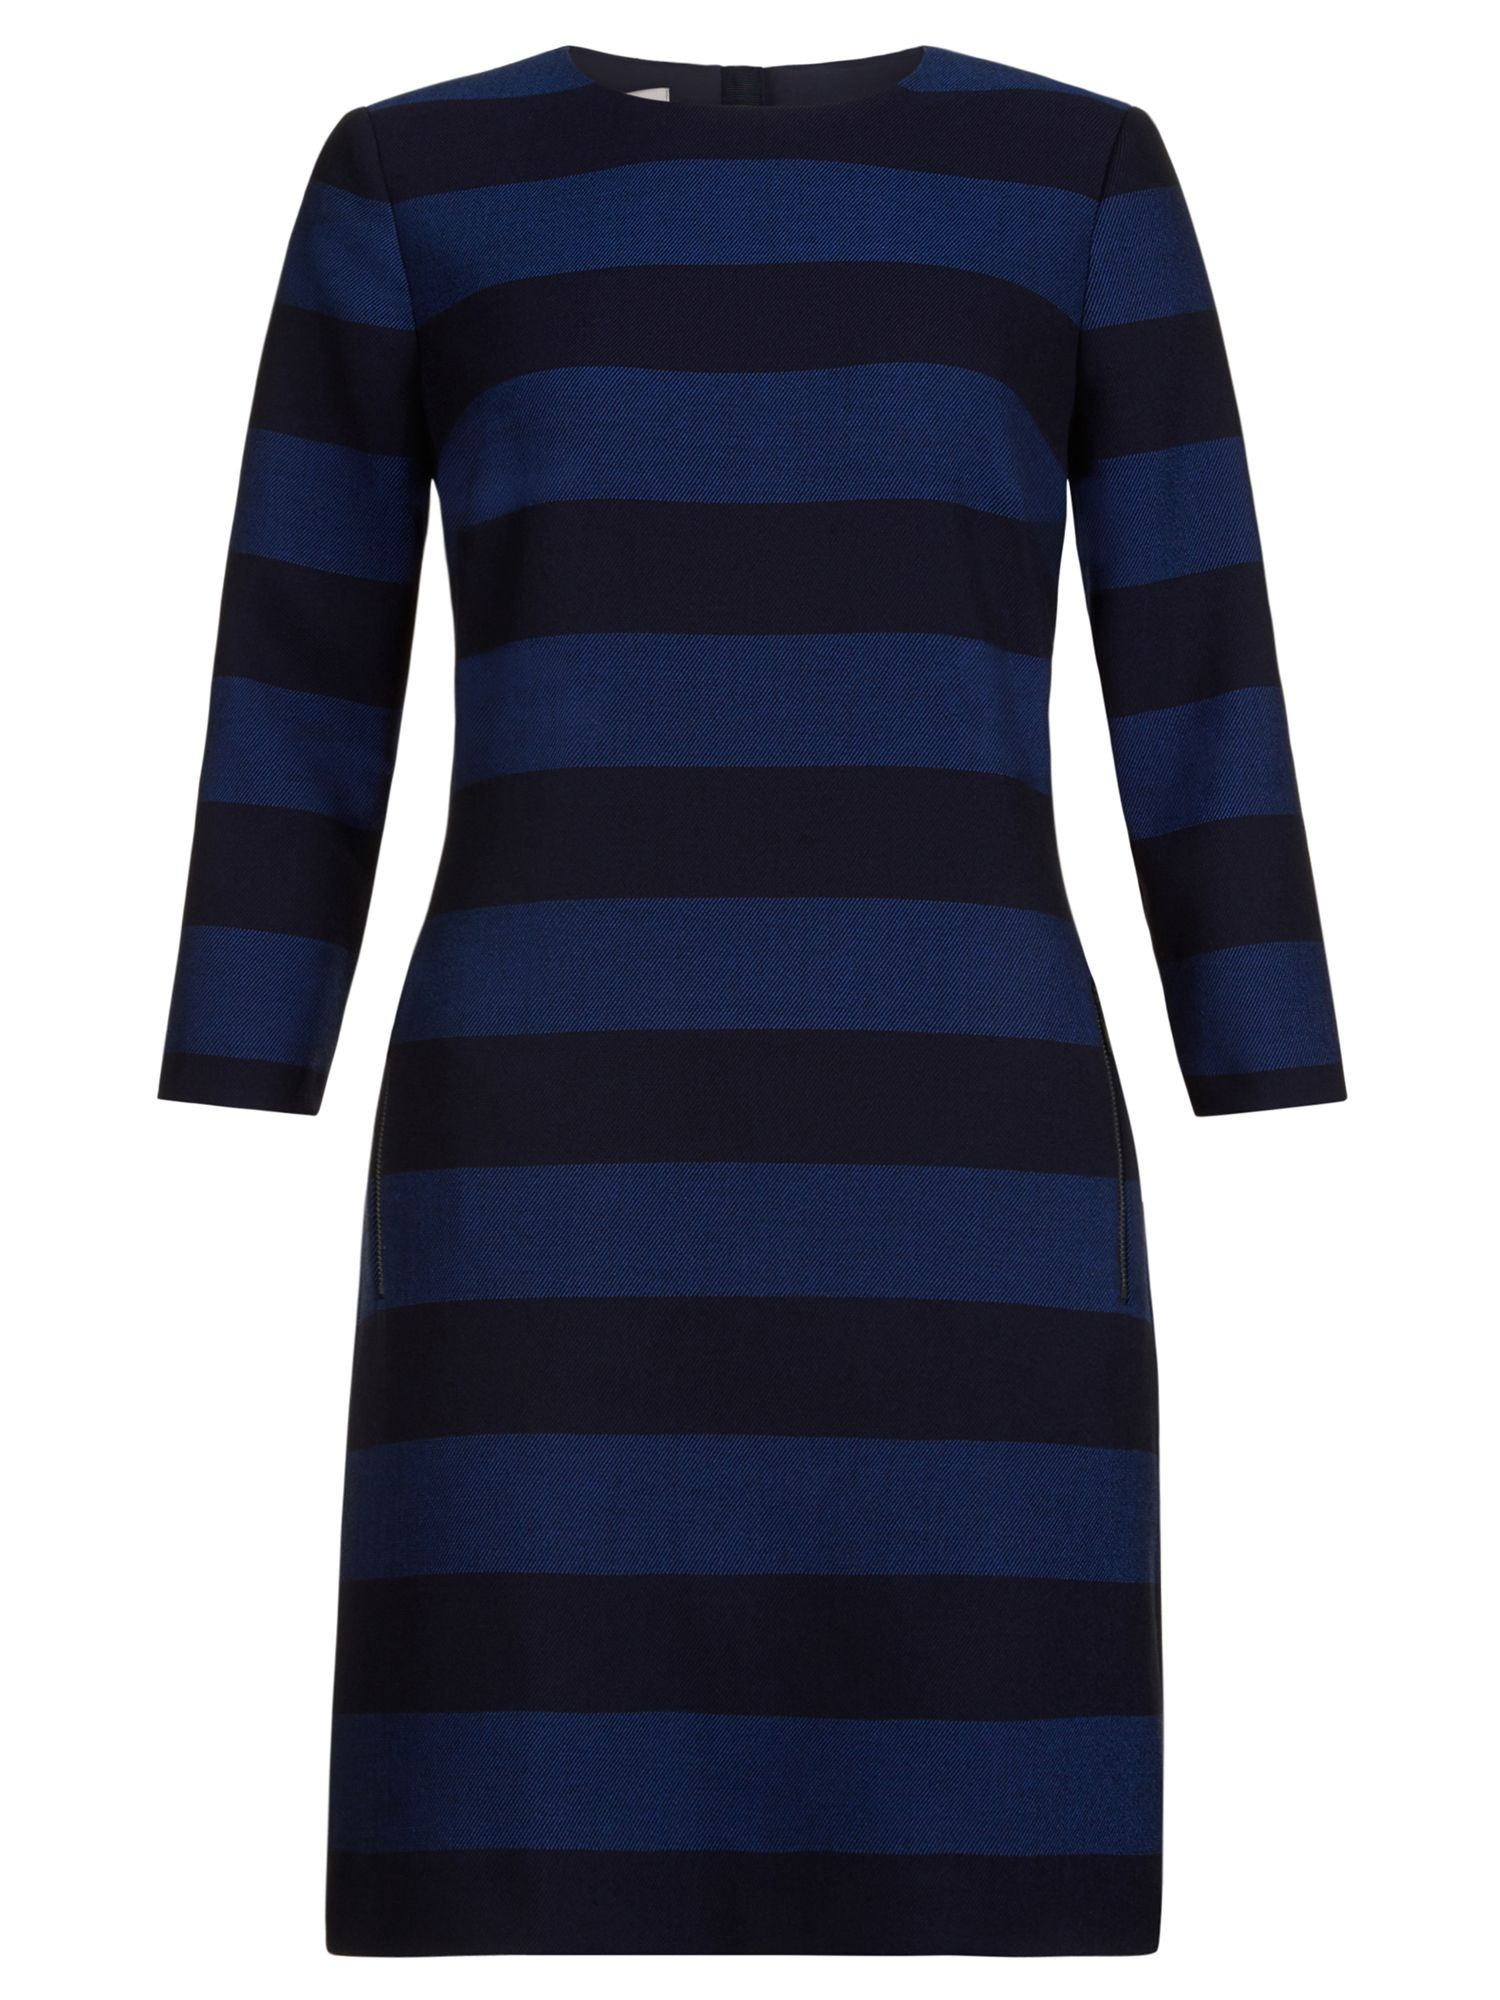 Hobbs Gracie Dress, Blue